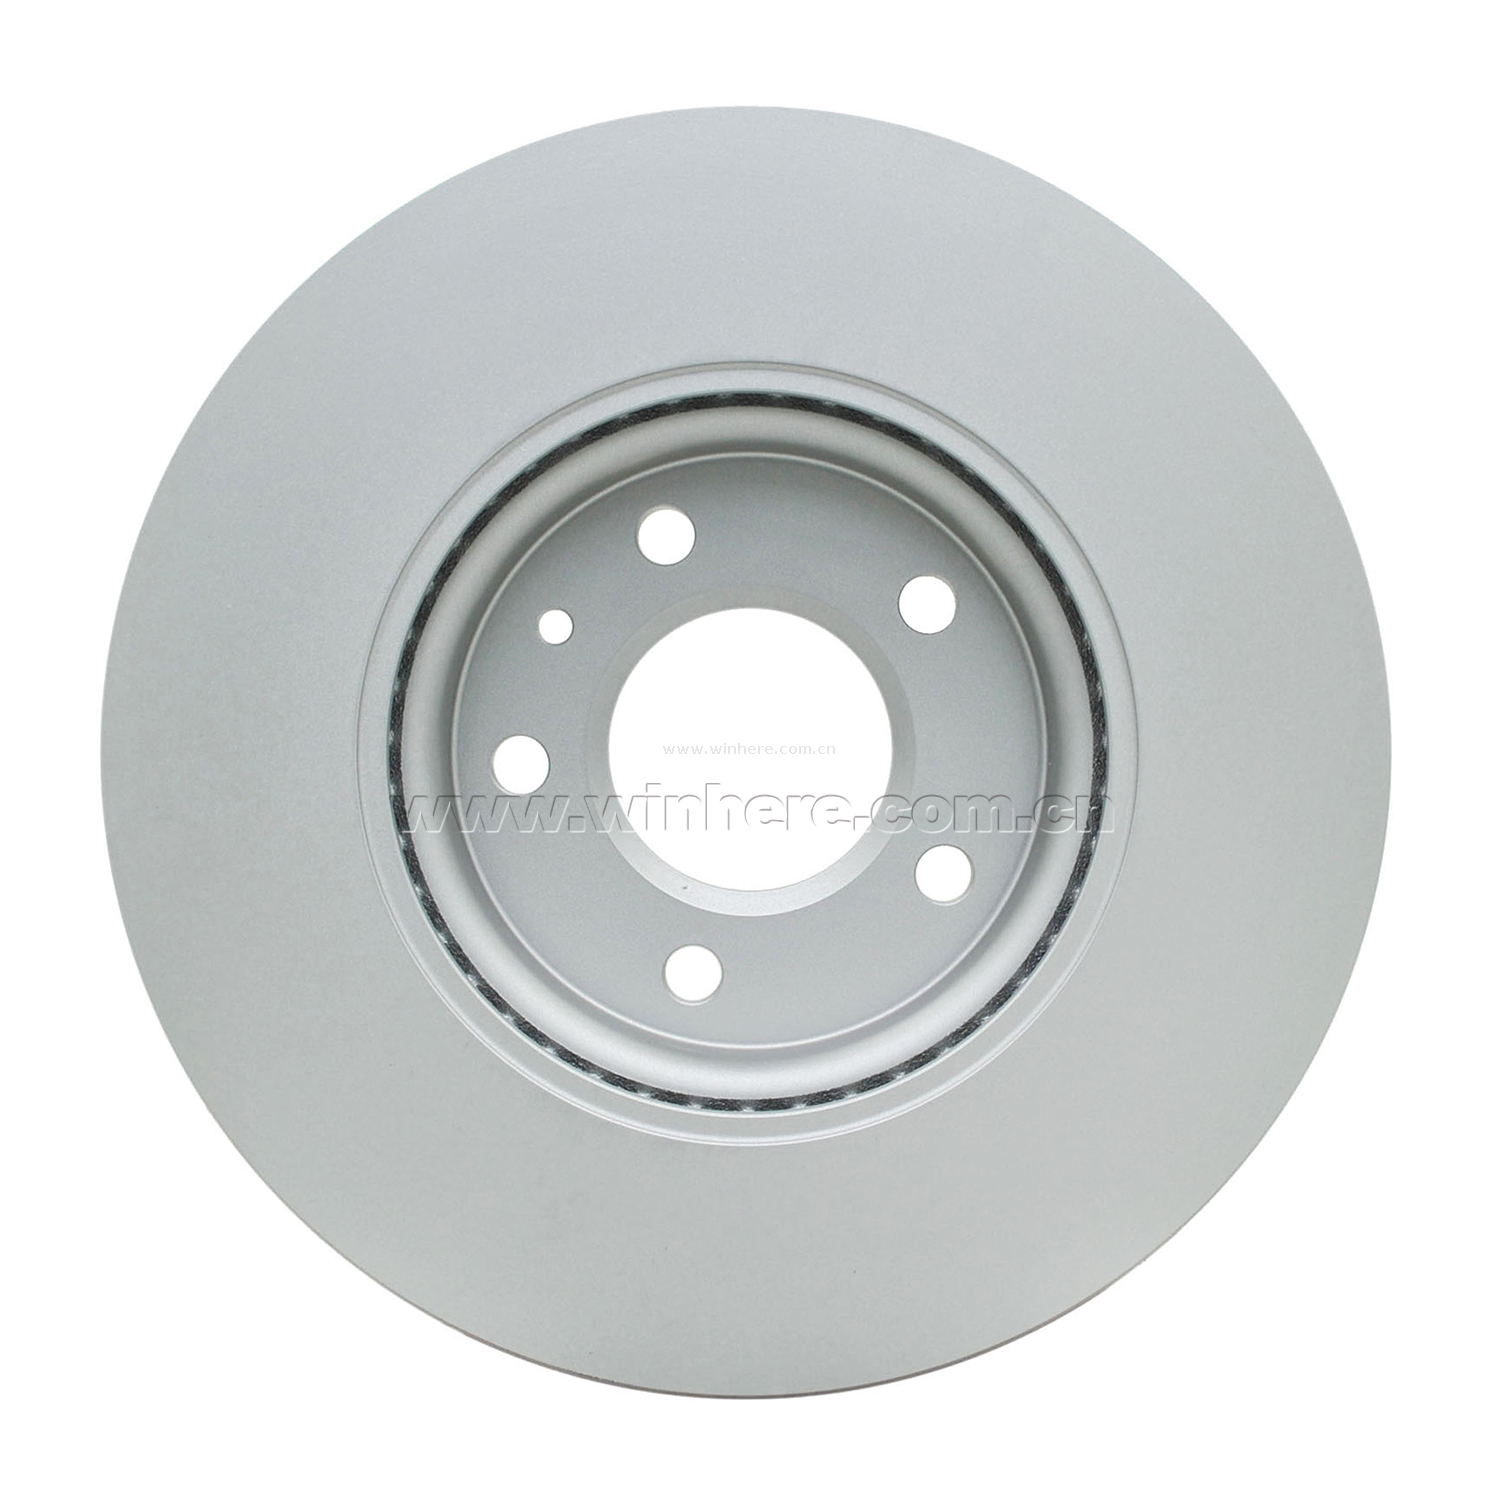 Brake Disc for CHEVROLET, OPEL, VAUXHALL Front ECE R90